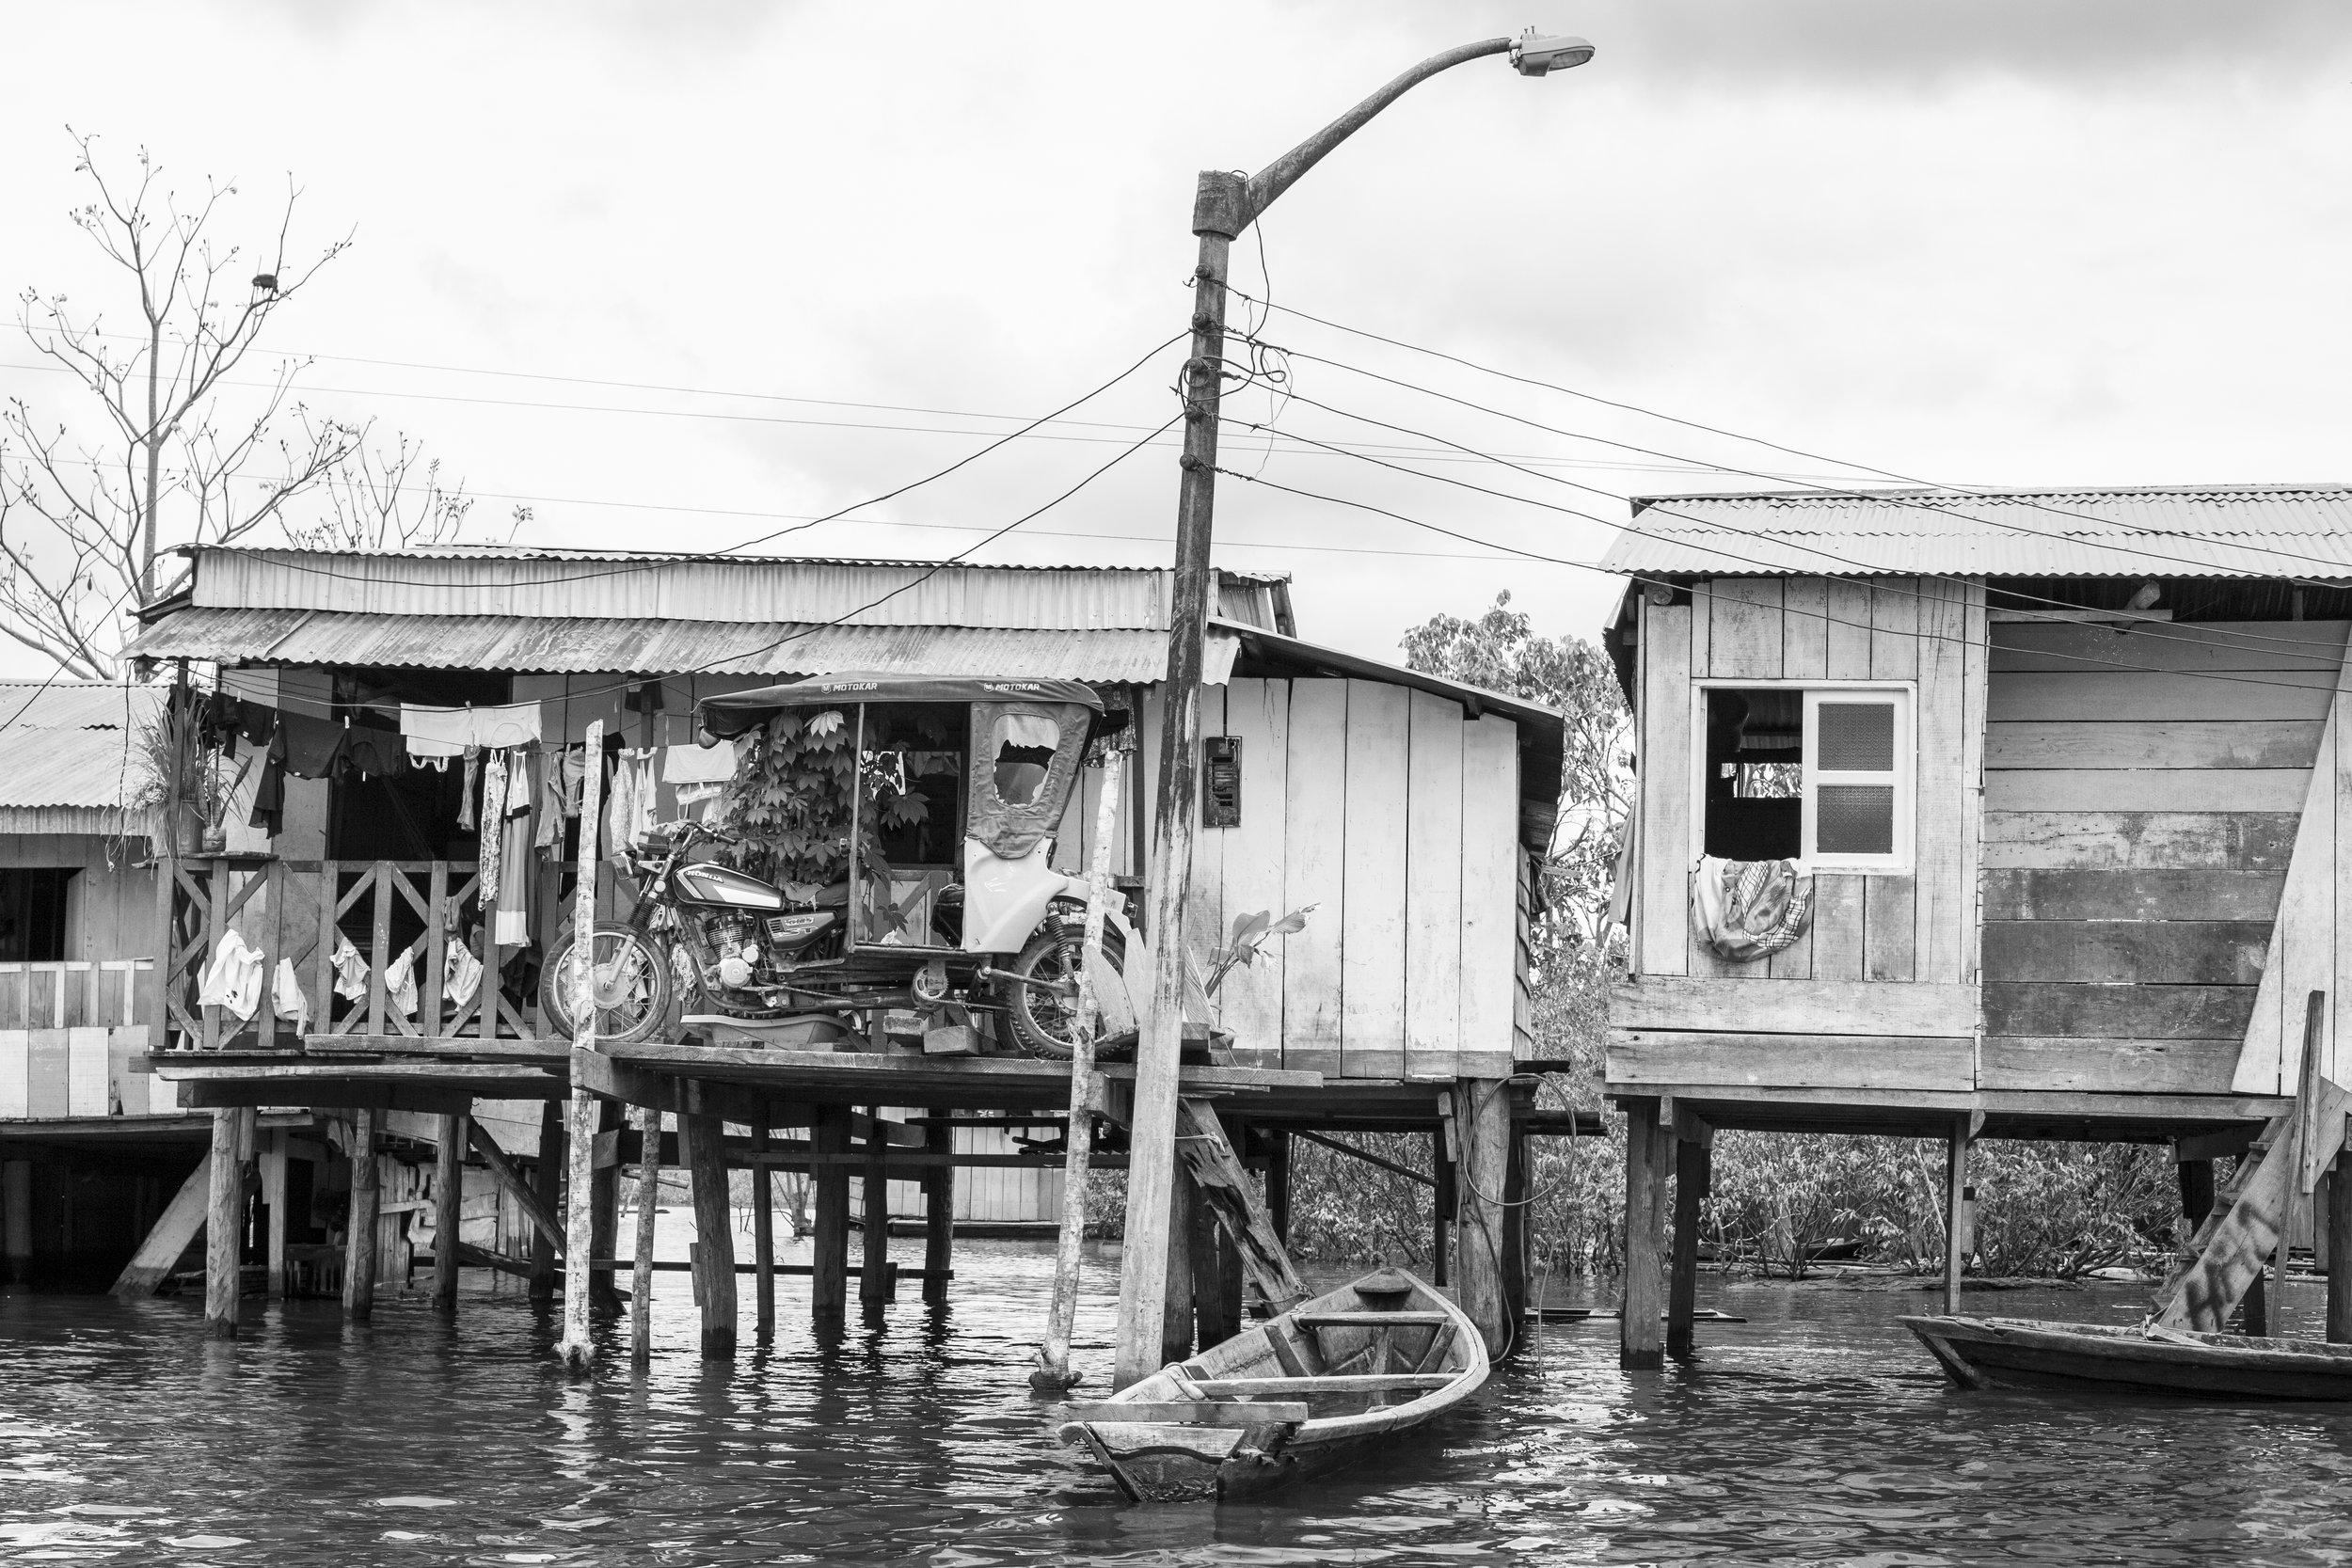 Black and White Photography at Belen Village, Iquitos Peru.